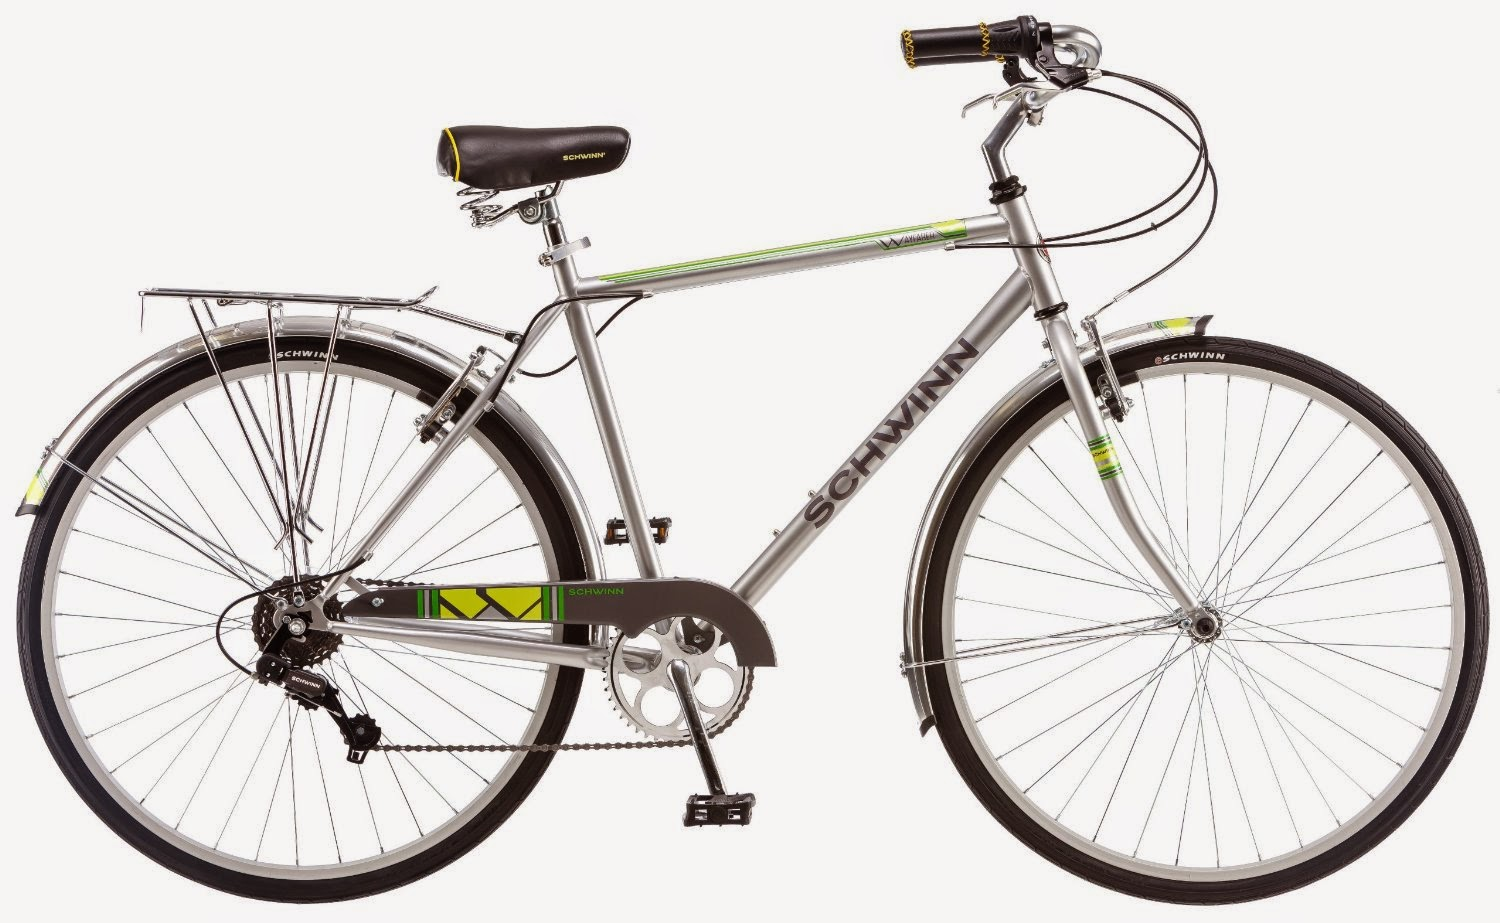 Schwinn Men's Wayfarer 700c Bicycle, review, hybrid bike for commuting, town, cruising & leisure cycling, 7-speed SRAM twist shifters, plus review of women's Schwinn Wayfarer